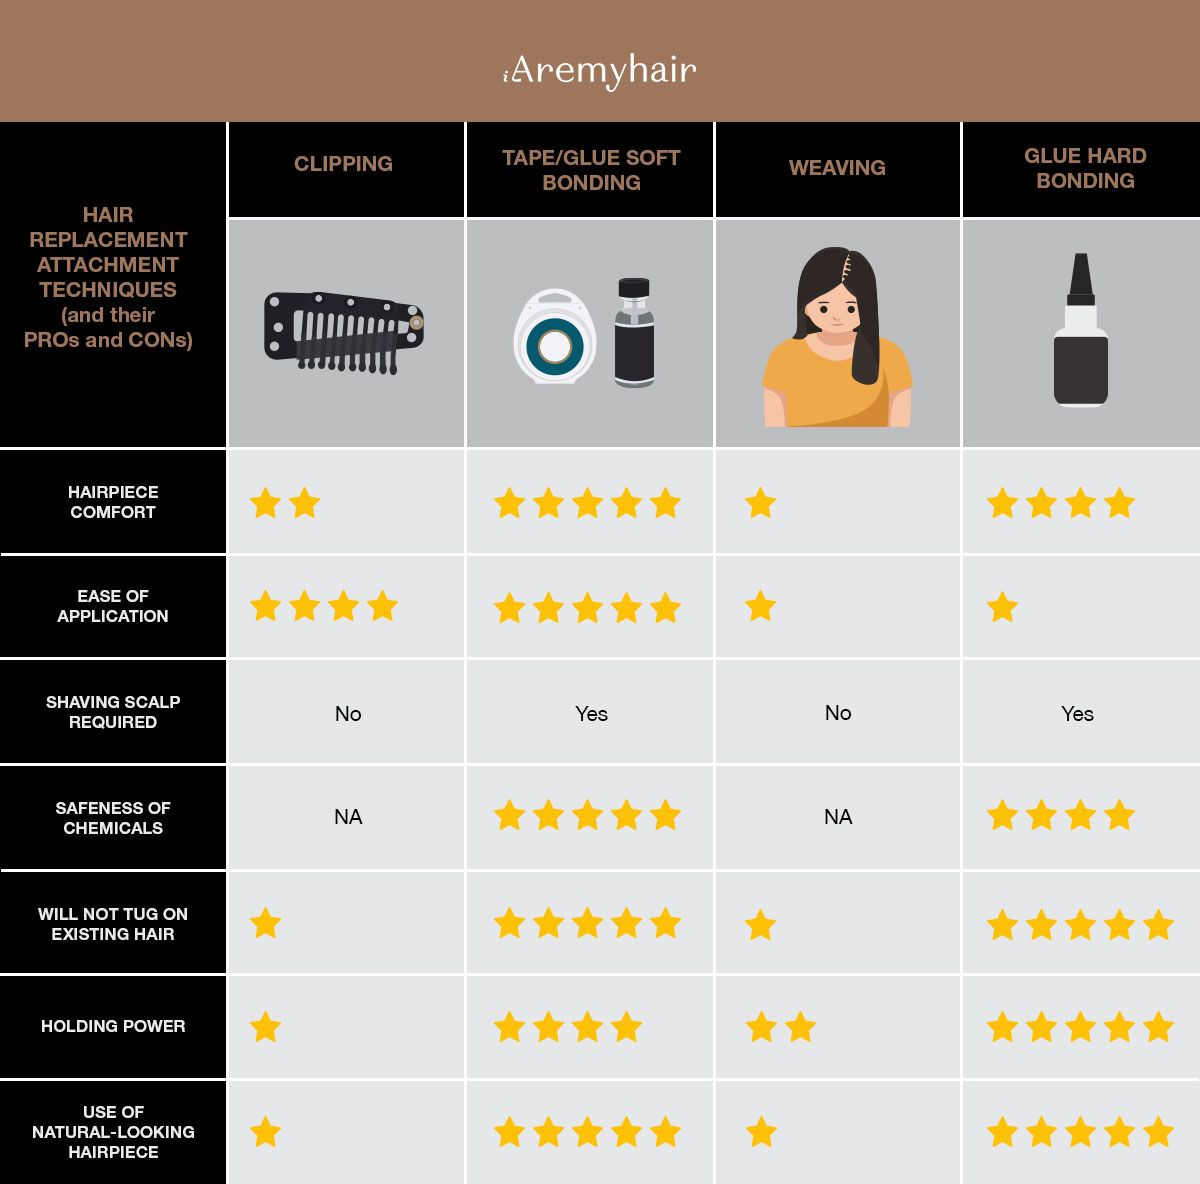 Hair-Attachment-Techniques-for-Hair-Replacement-System-Pros-and-Cons-Infographics-Aremyhair-Singapore-Blog